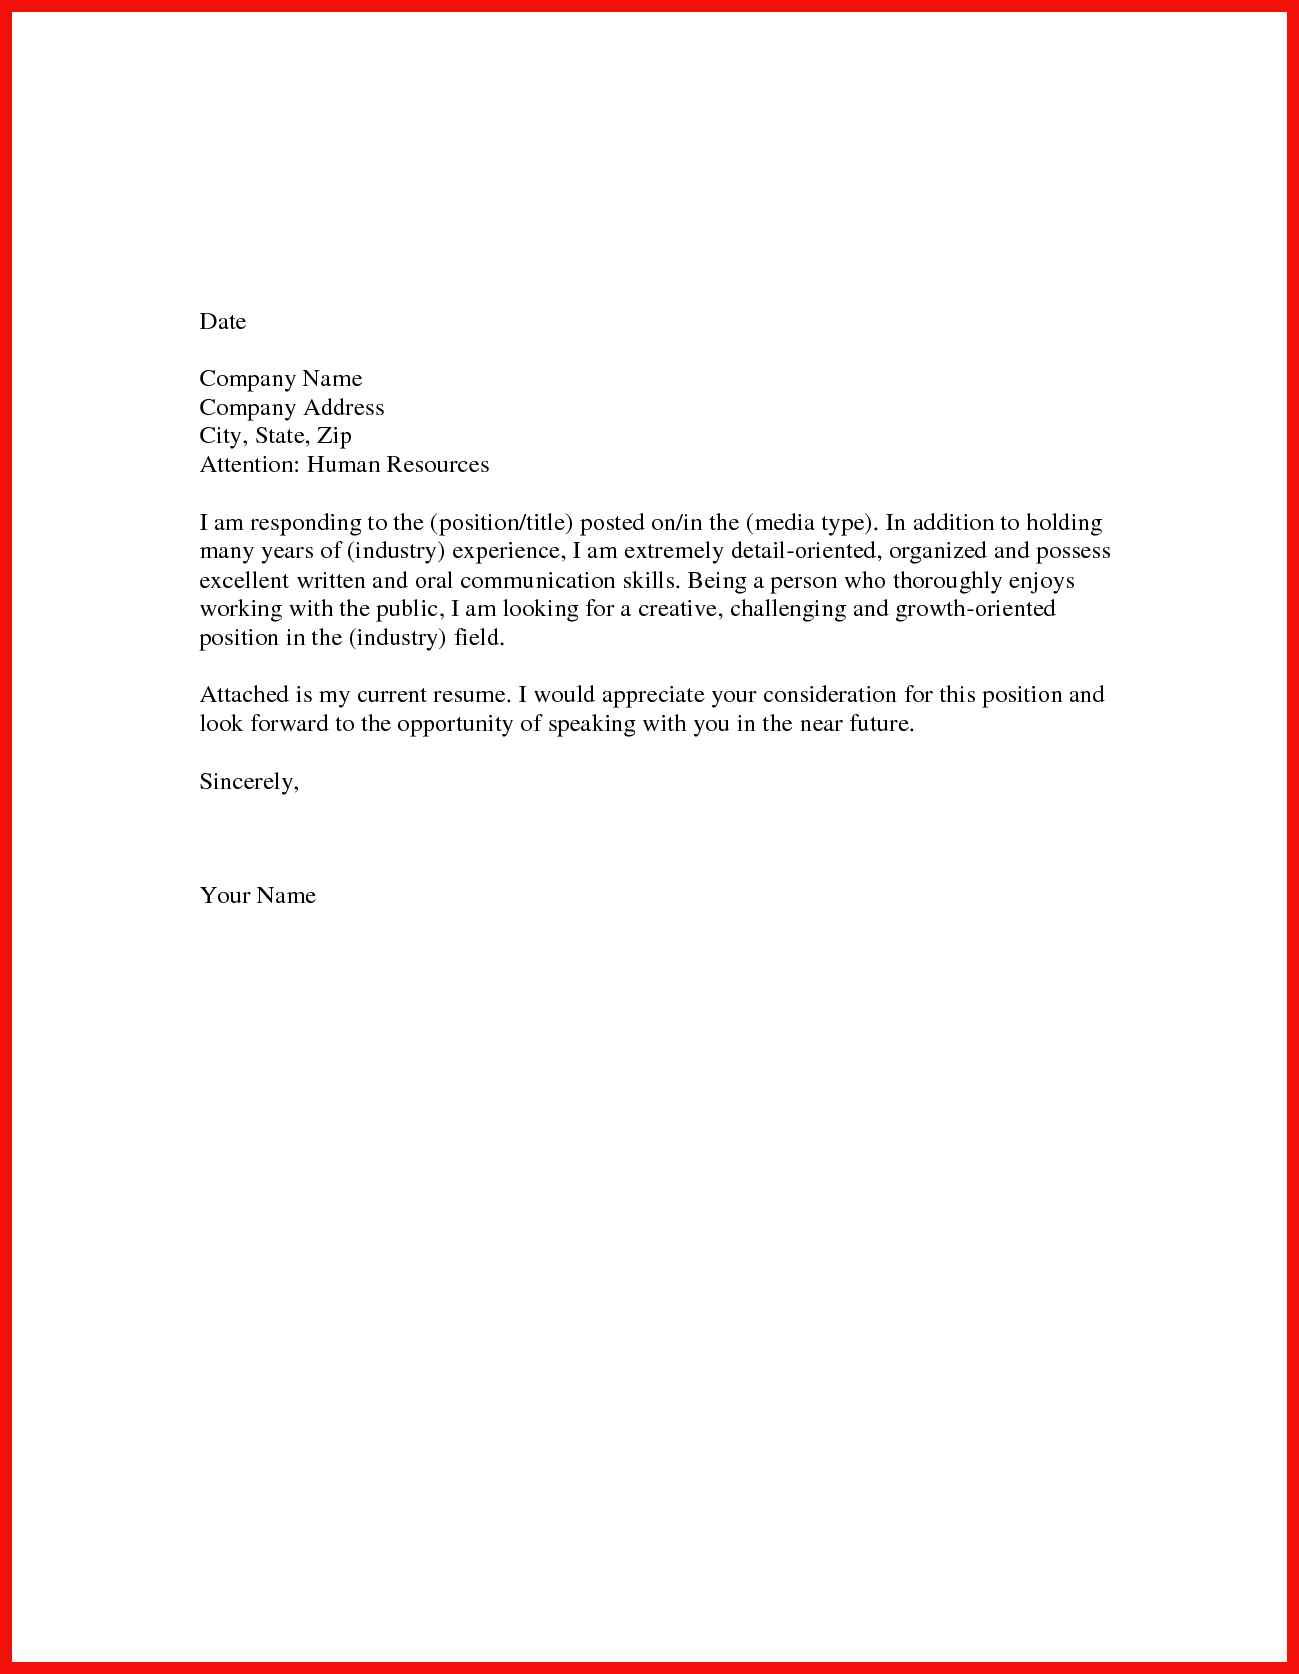 short cover letter examples example templates resume noc quality manager graphic design Resume Short Resume Cover Letter Examples